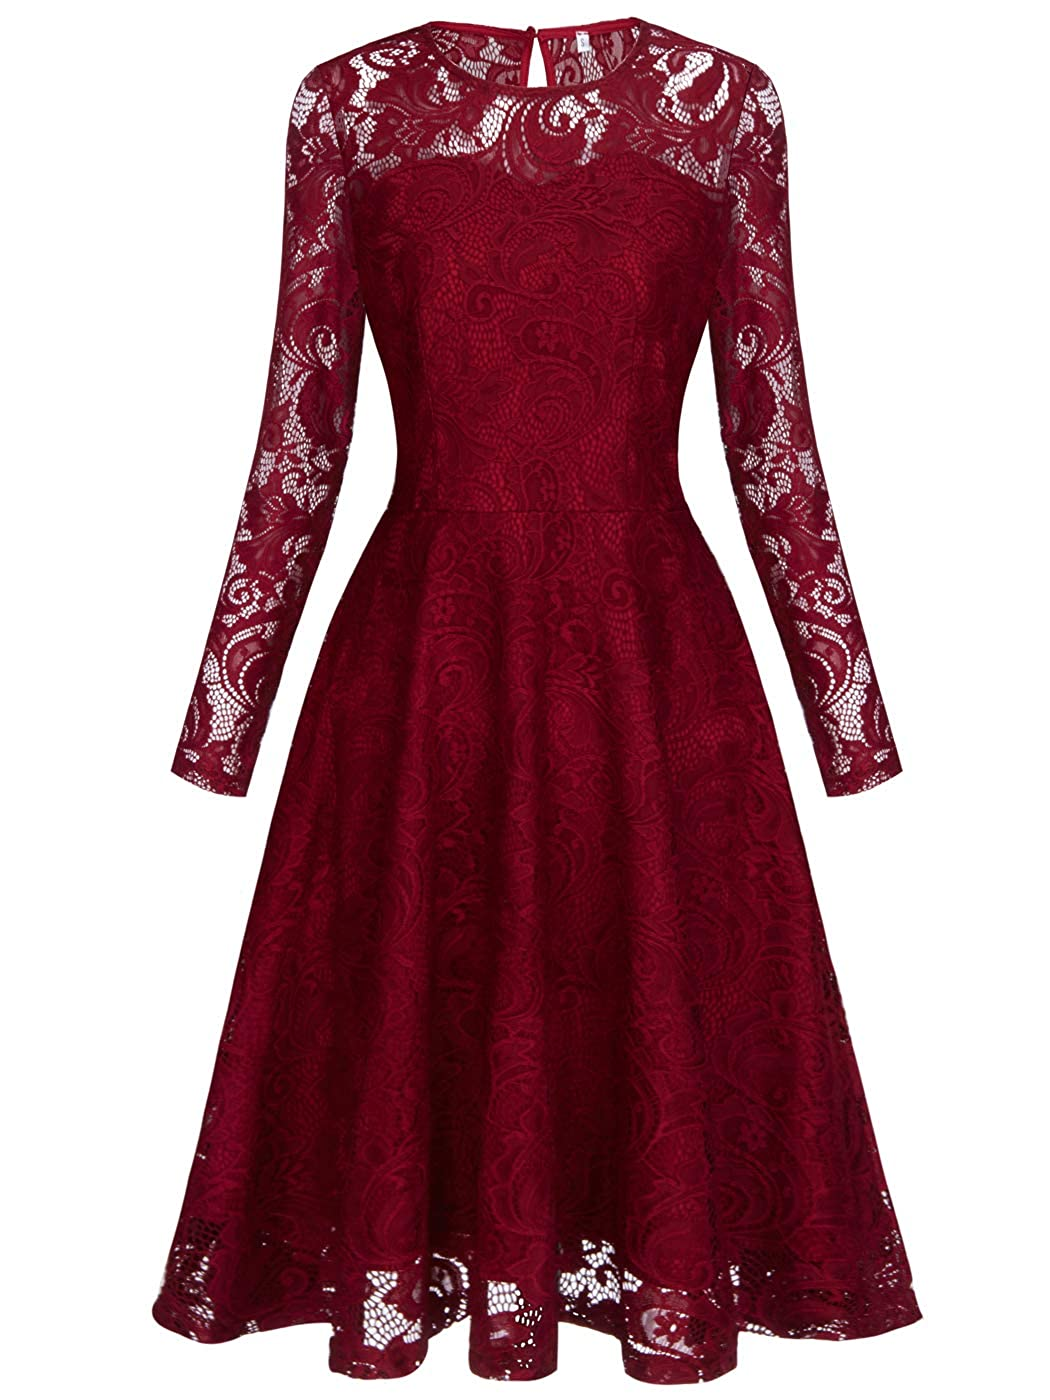 031burgundy FAIRY COUPLE Short Vintage Floral Juniors Lace Dress with Long Sleeve for Party Wedding Cocktail